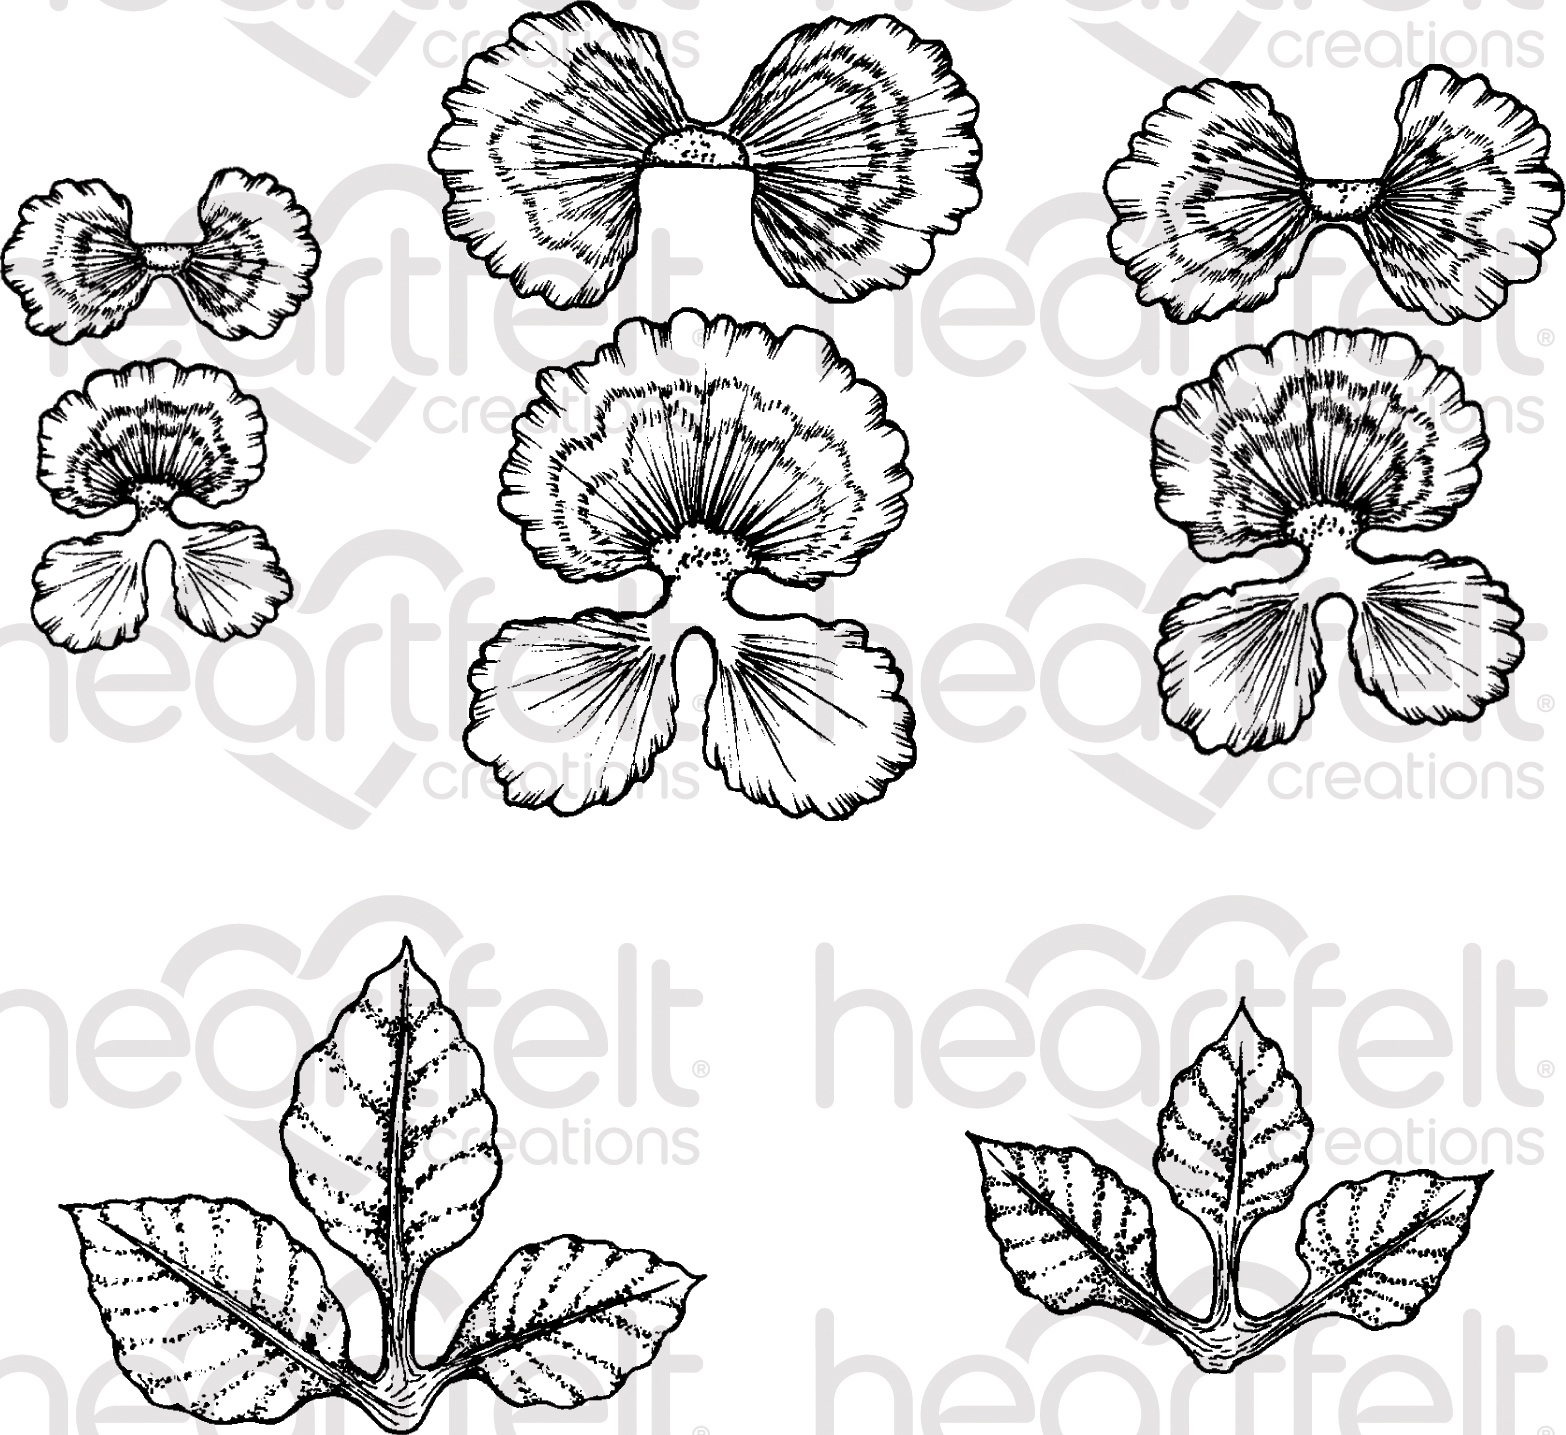 Heartfelt Creations Cling Rubber Stamp and die Set-Burst Of Spring-Cheery Pansy